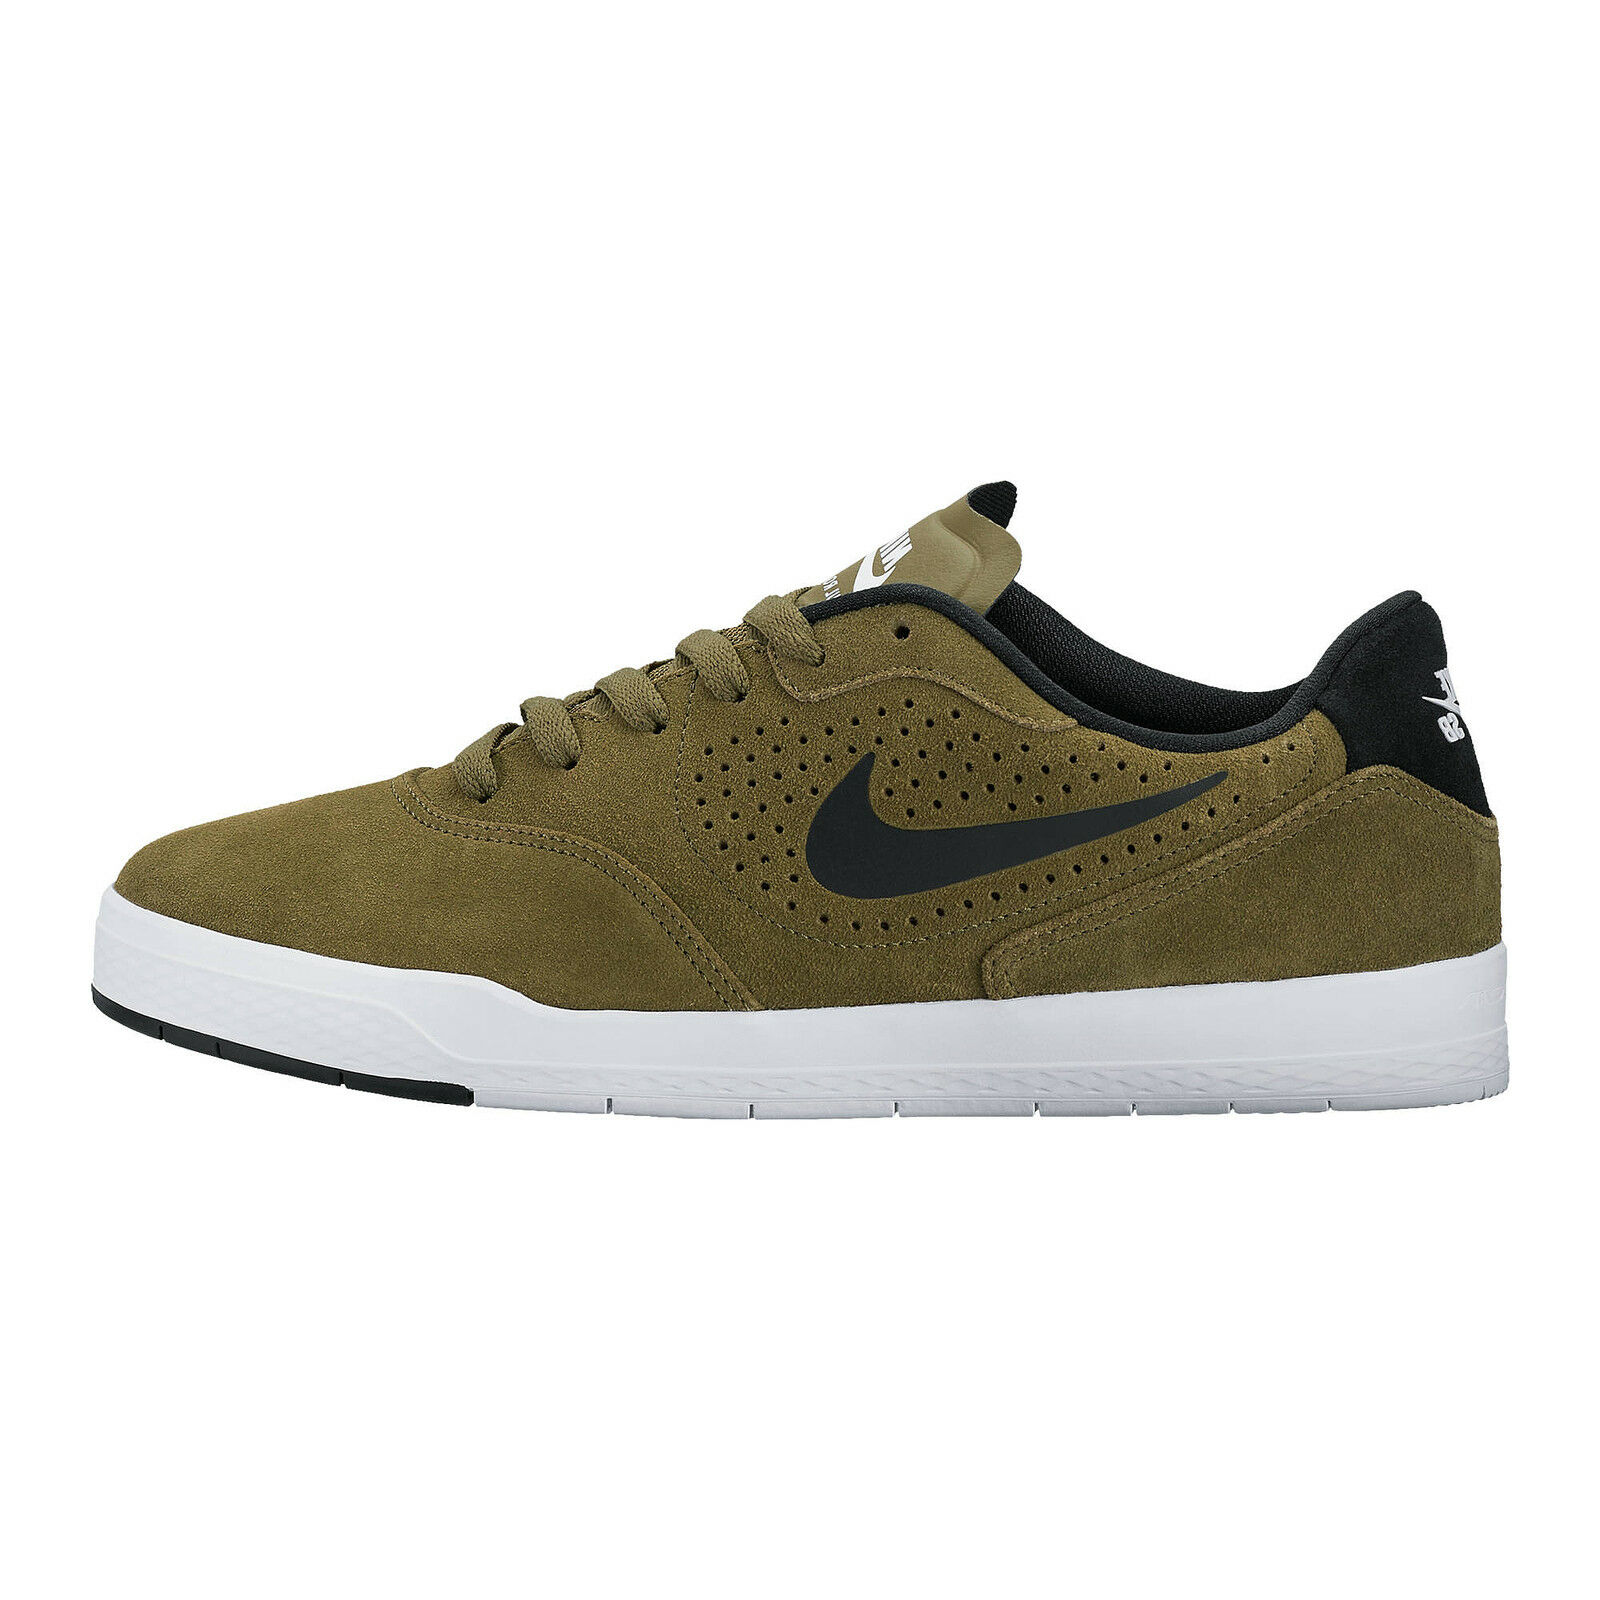 Nike Paul Rodriguez 9 CS 749555-201 Skate Shoe Lifestyle Leisure Shoes